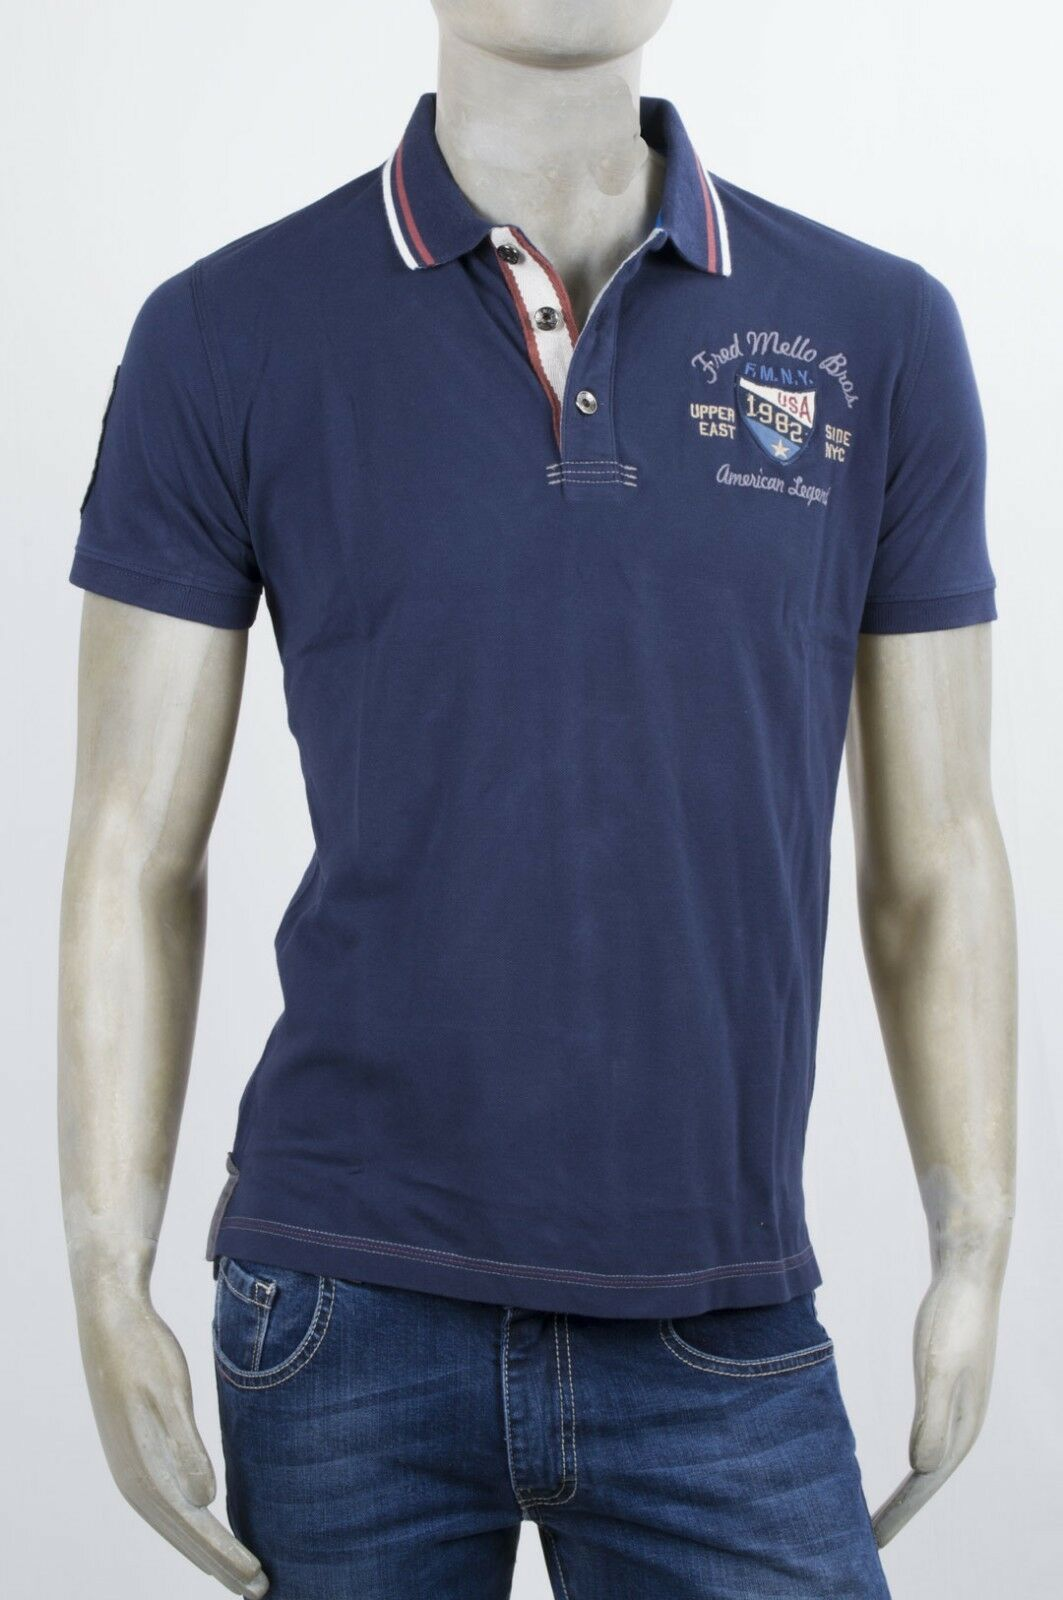 POLO FRED MELLO M-M IN COTONE PIQUE BLU CON PATCH E RICAMI COLLETTO STAMPATO